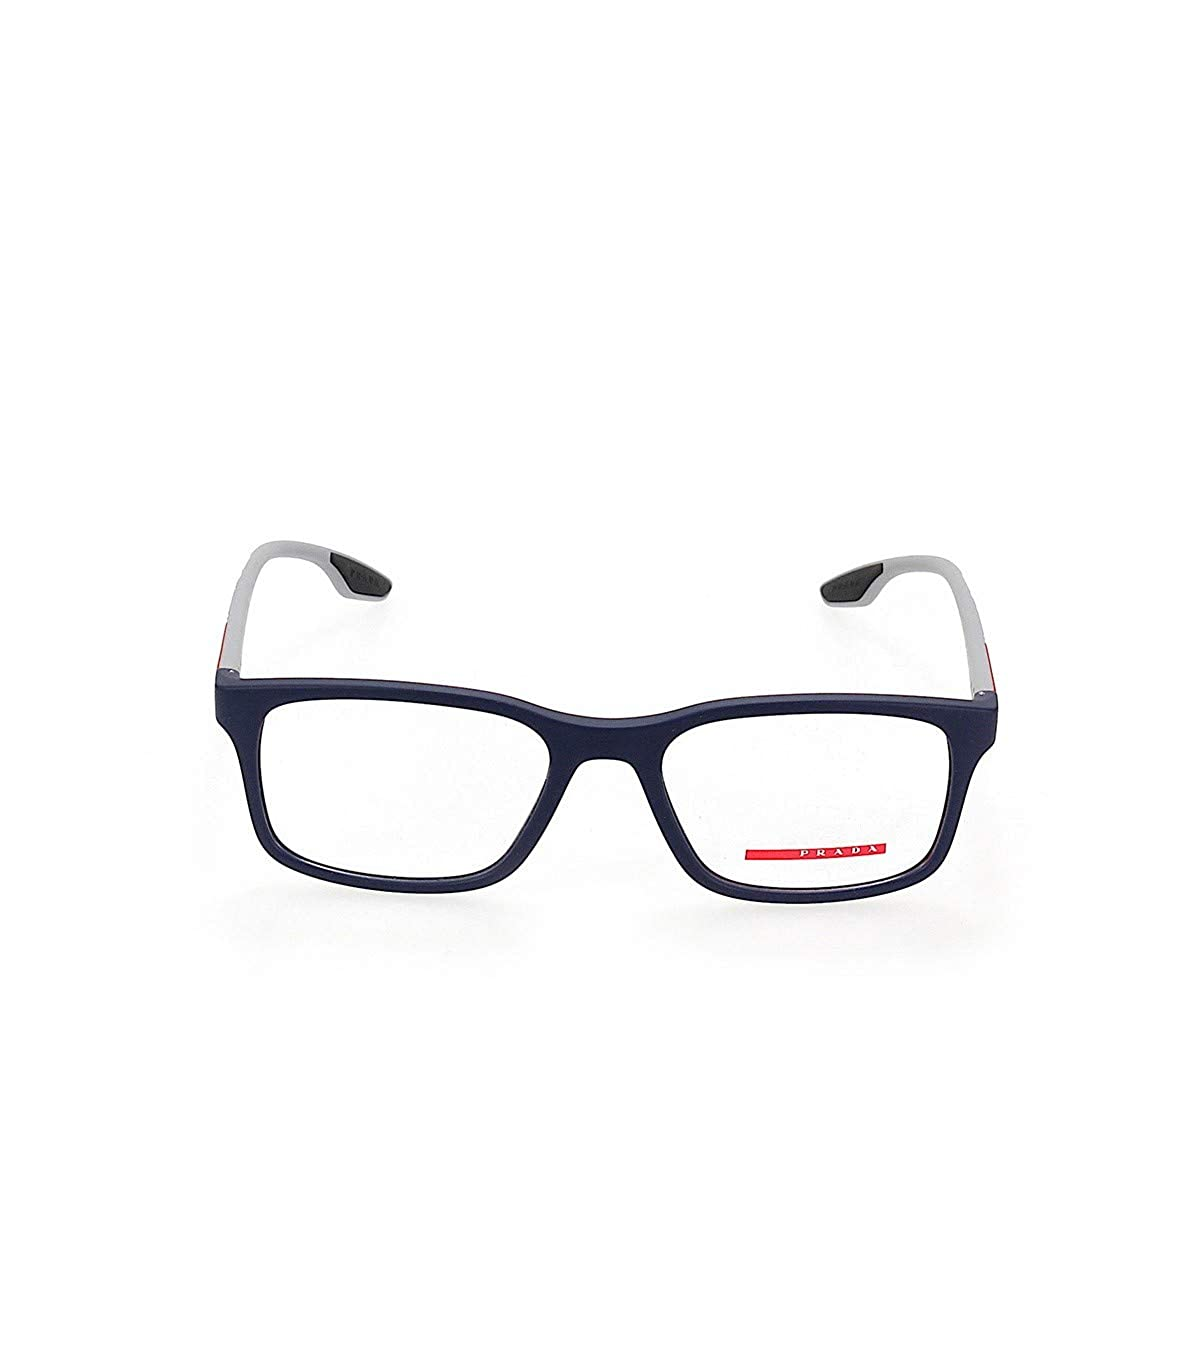 ea16e3b7999 Eyeglasses Prada Linea Rossa PS 1 LV 2881O1 BLUE RUBBER at Amazon Men s  Clothing store